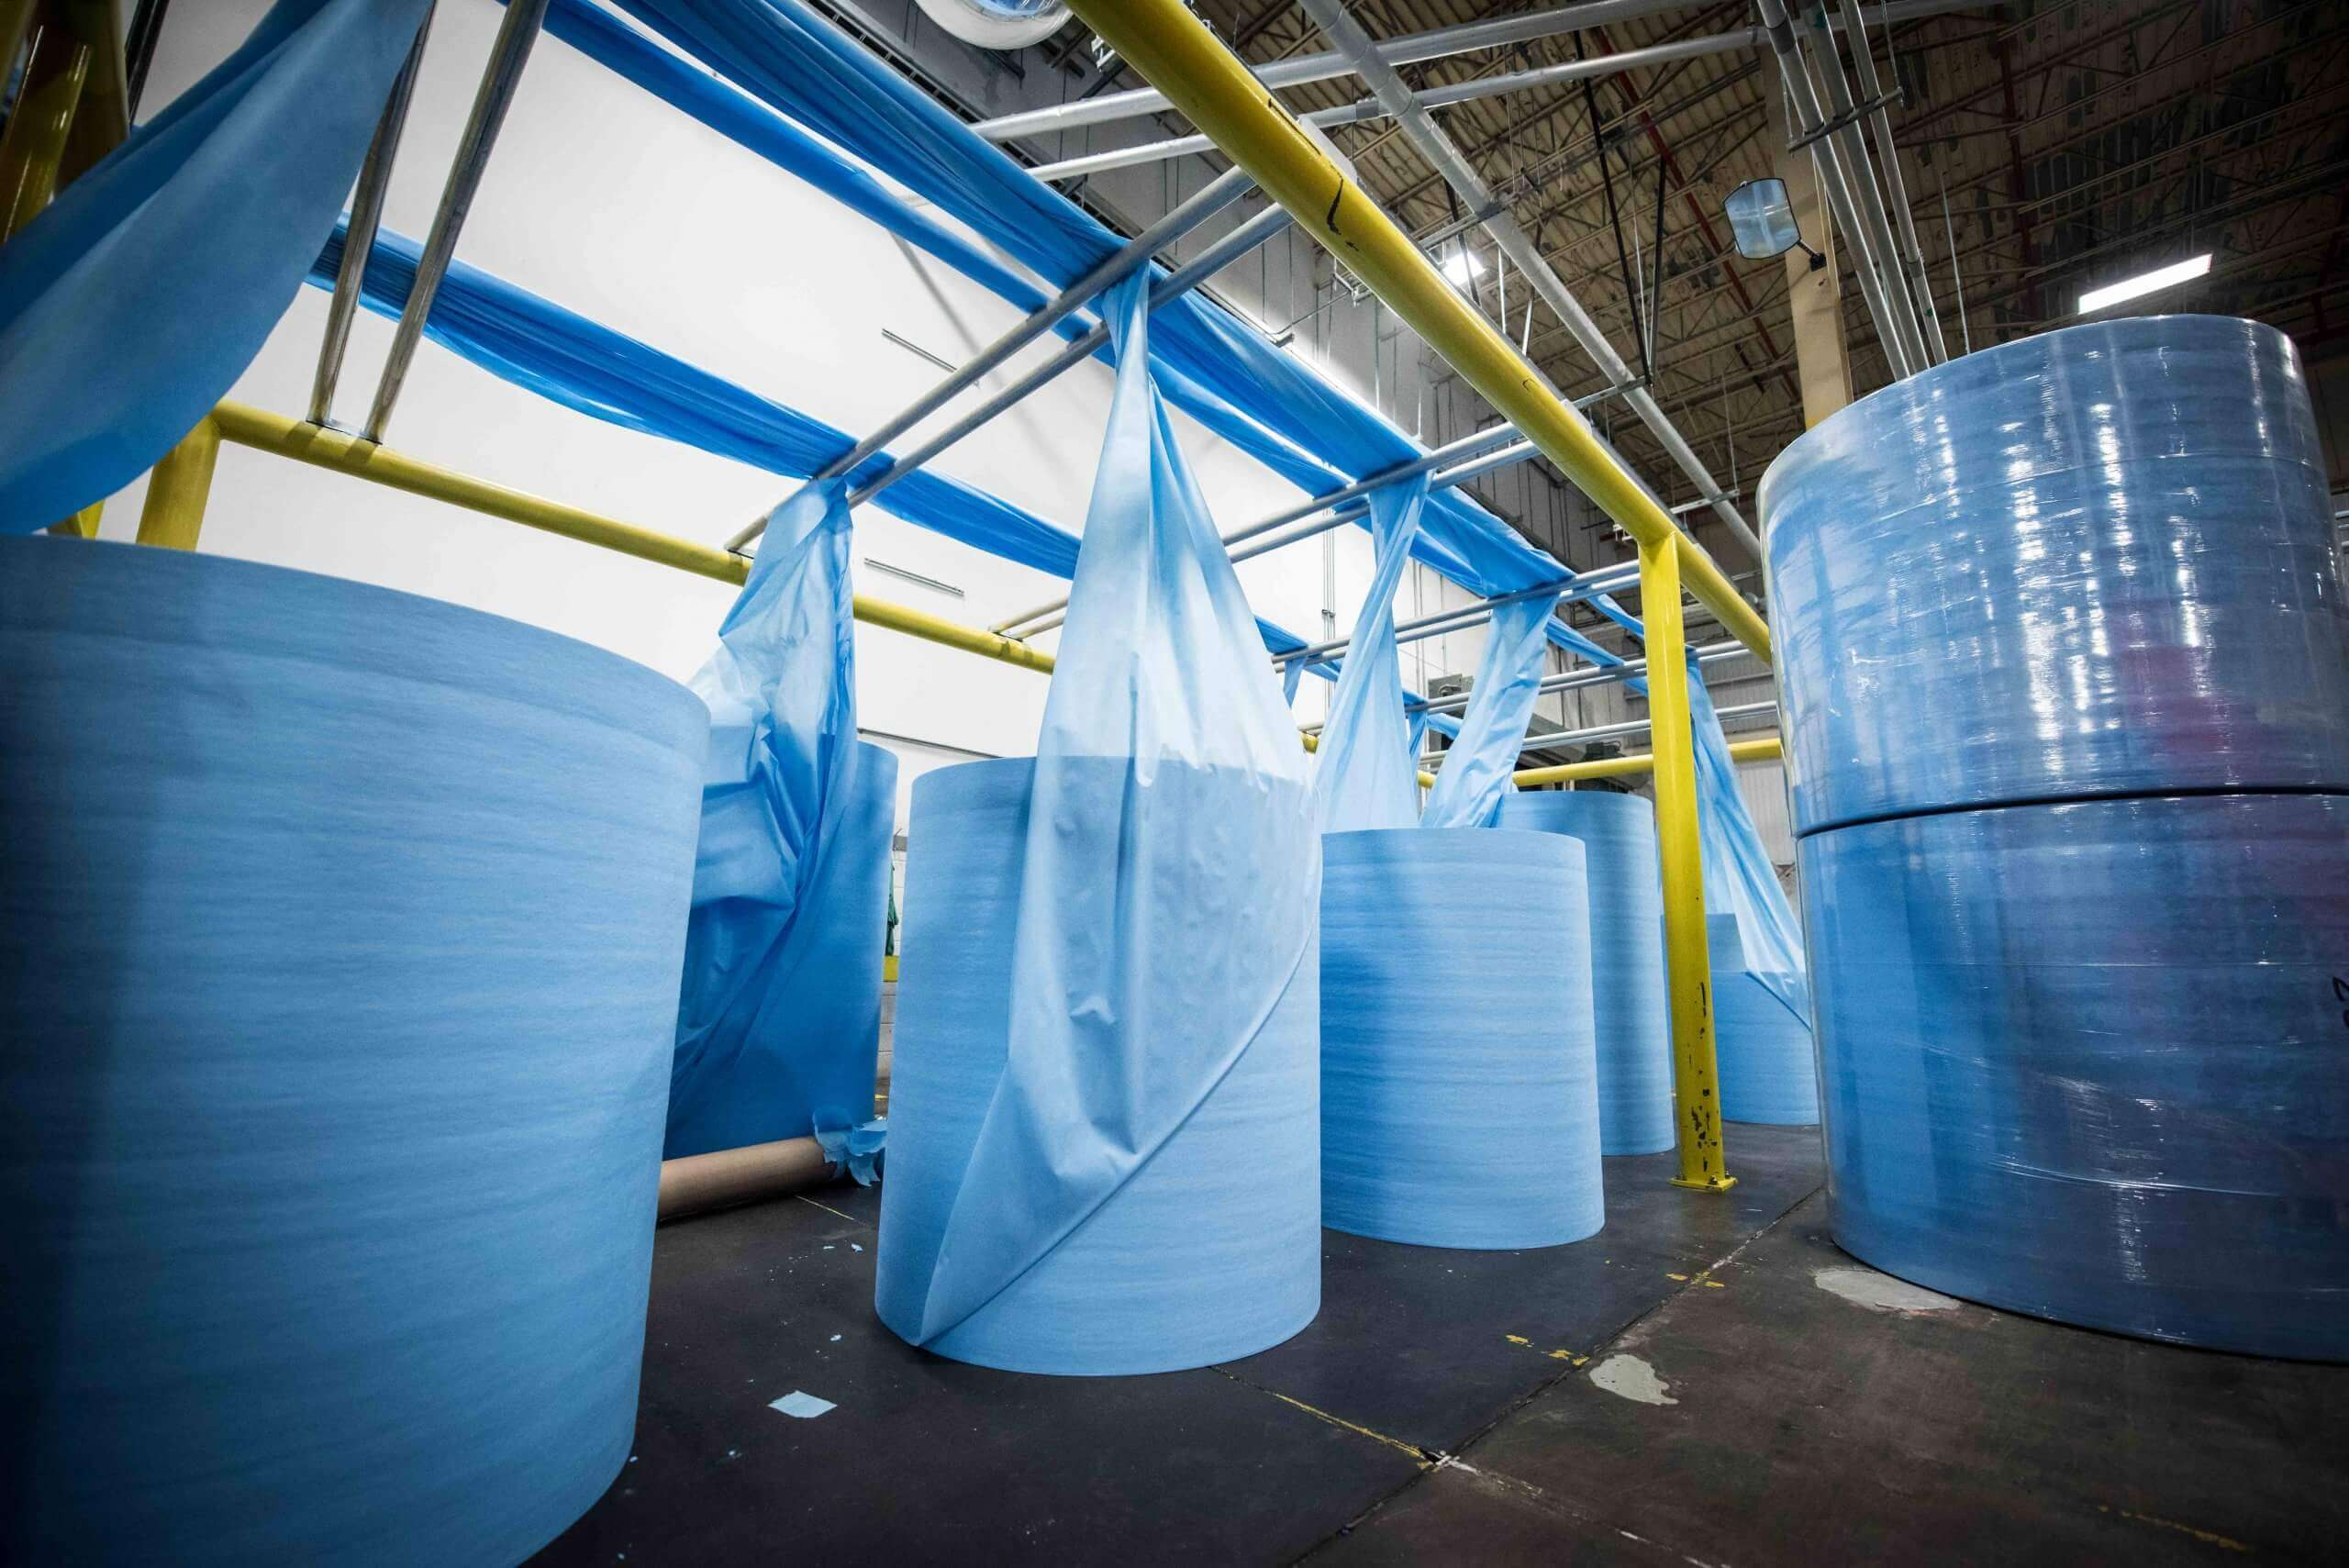 Production waste from hygienic textile production is shredded and returned to the production process